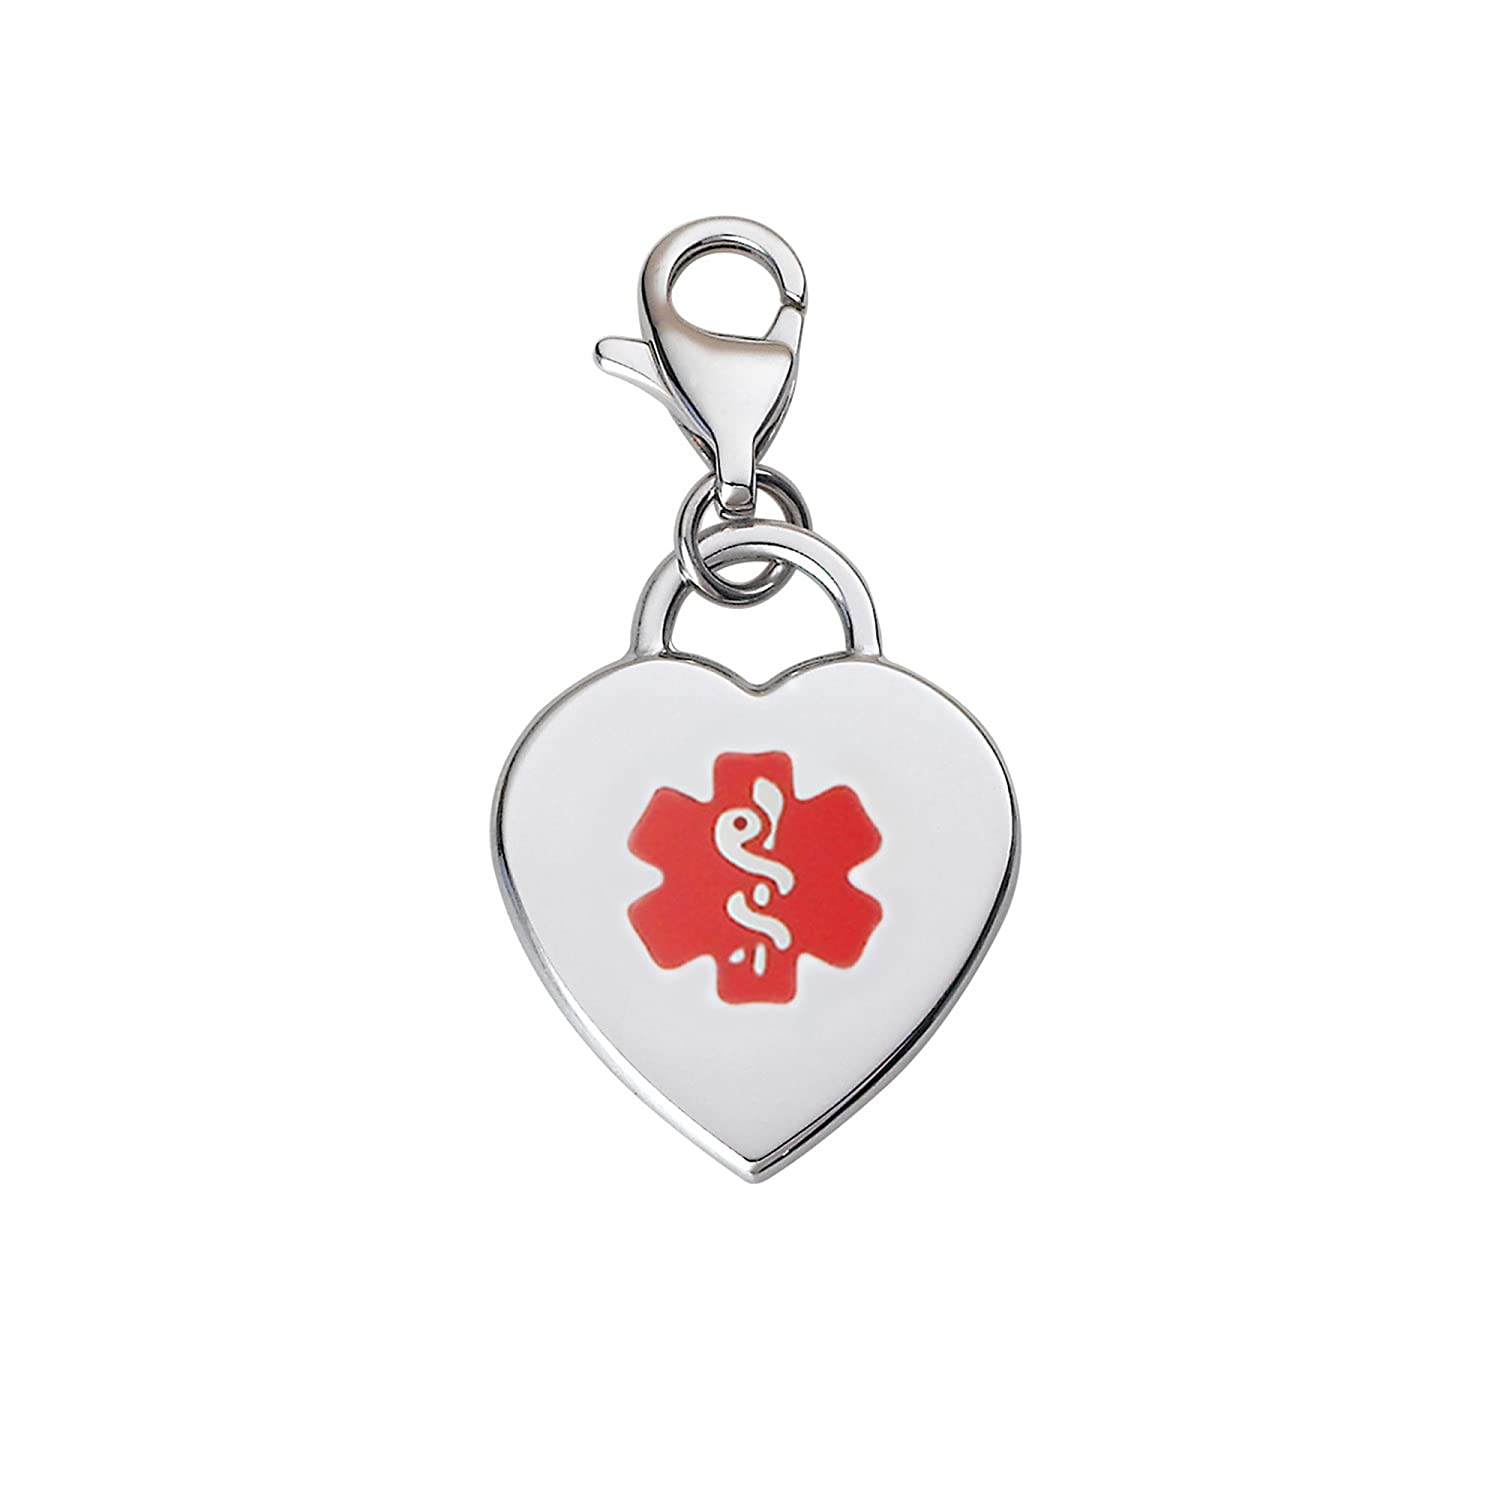 Divoti Custom Engraved Adorable Heart 316L Medical Alert Charm w/Lobster Clasp Divoti Inc. 5175GR